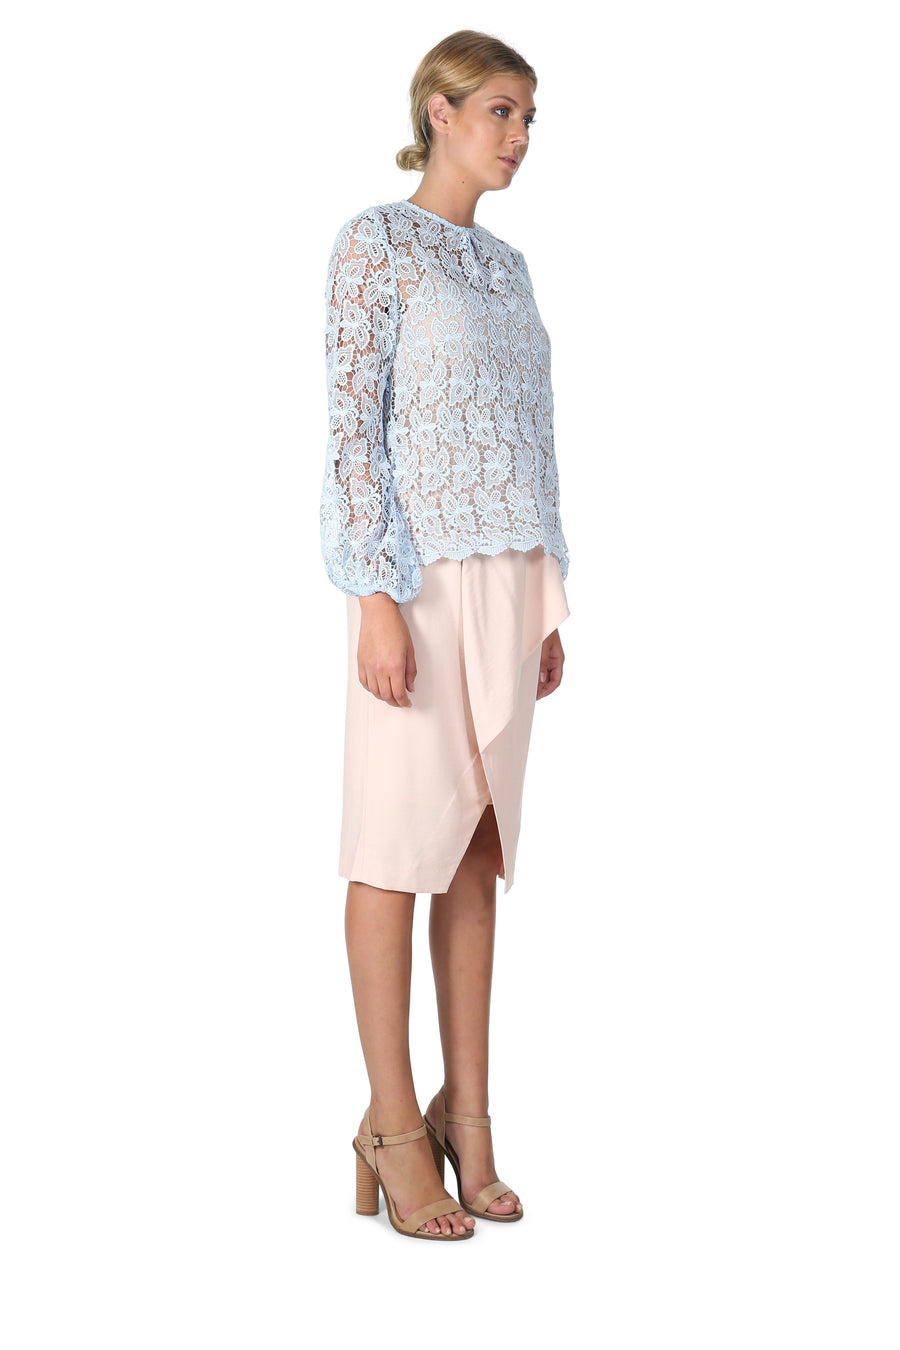 Cooper St Tahu Lace Top